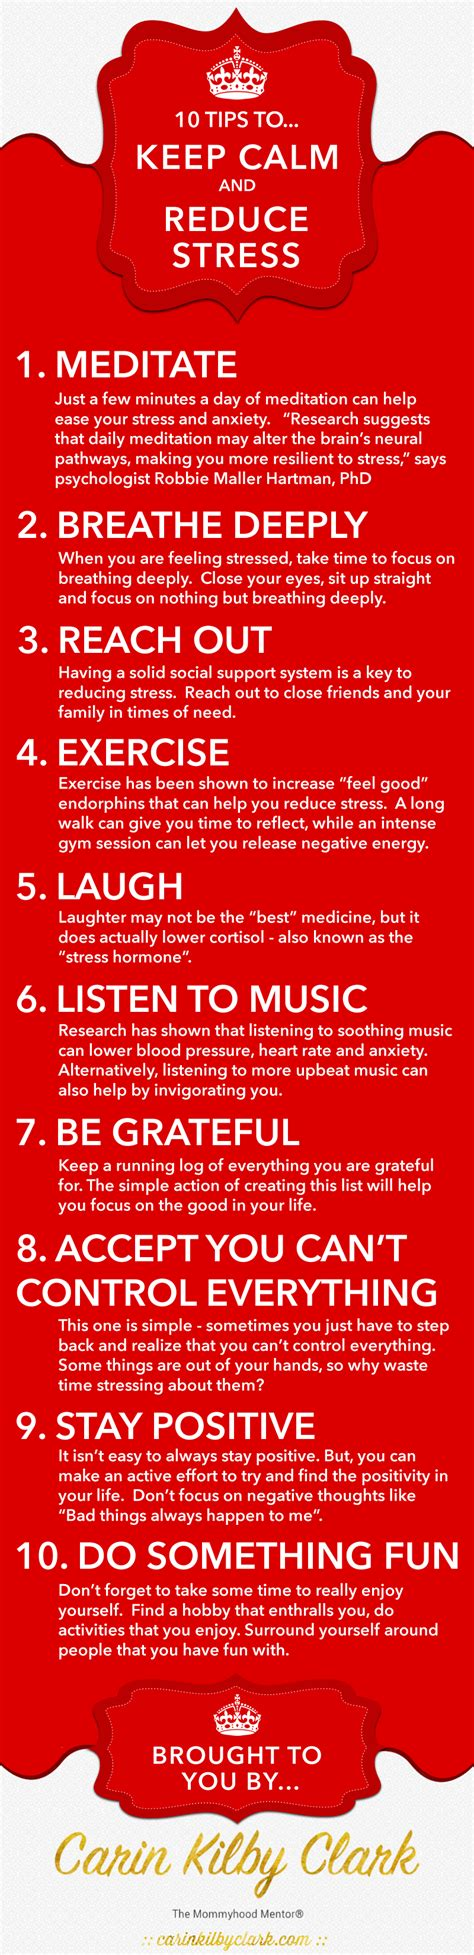 reduce anxiety 10 tips to keep calm reduce stress infographic